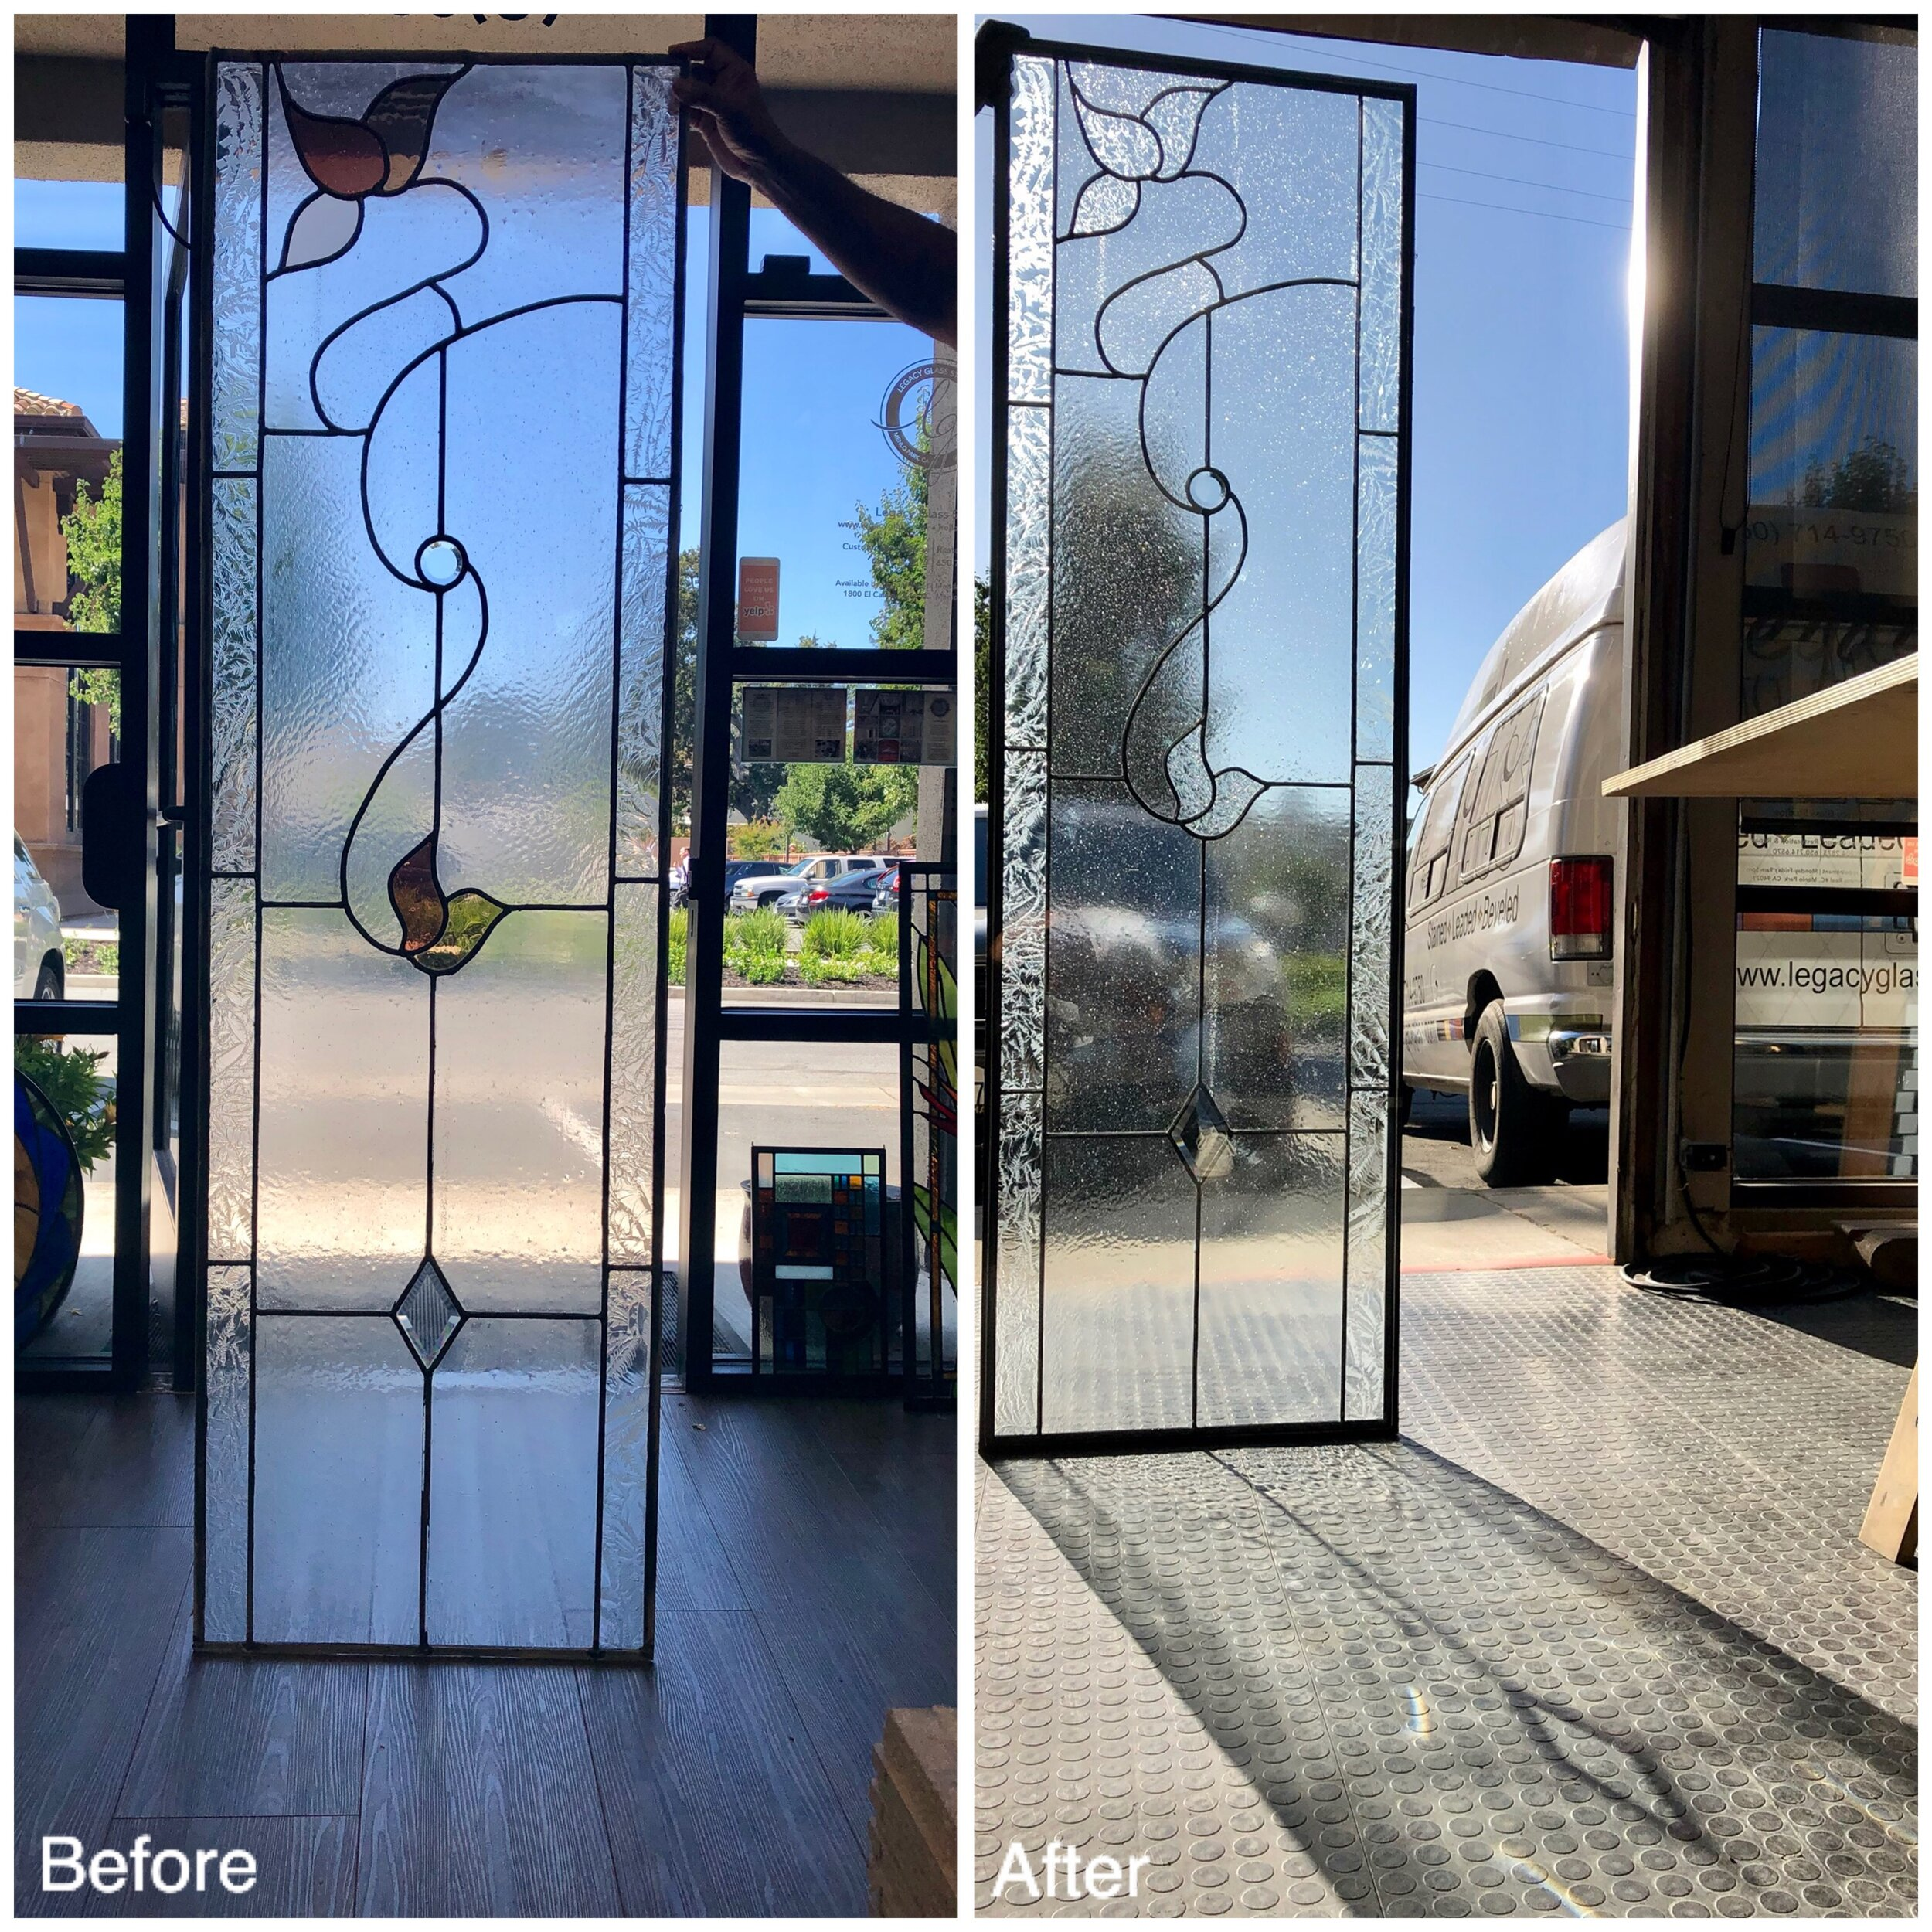 insulated leaded glass stained glass custom design california legacy glass studios leaves clear texture side light front entry way.jpg